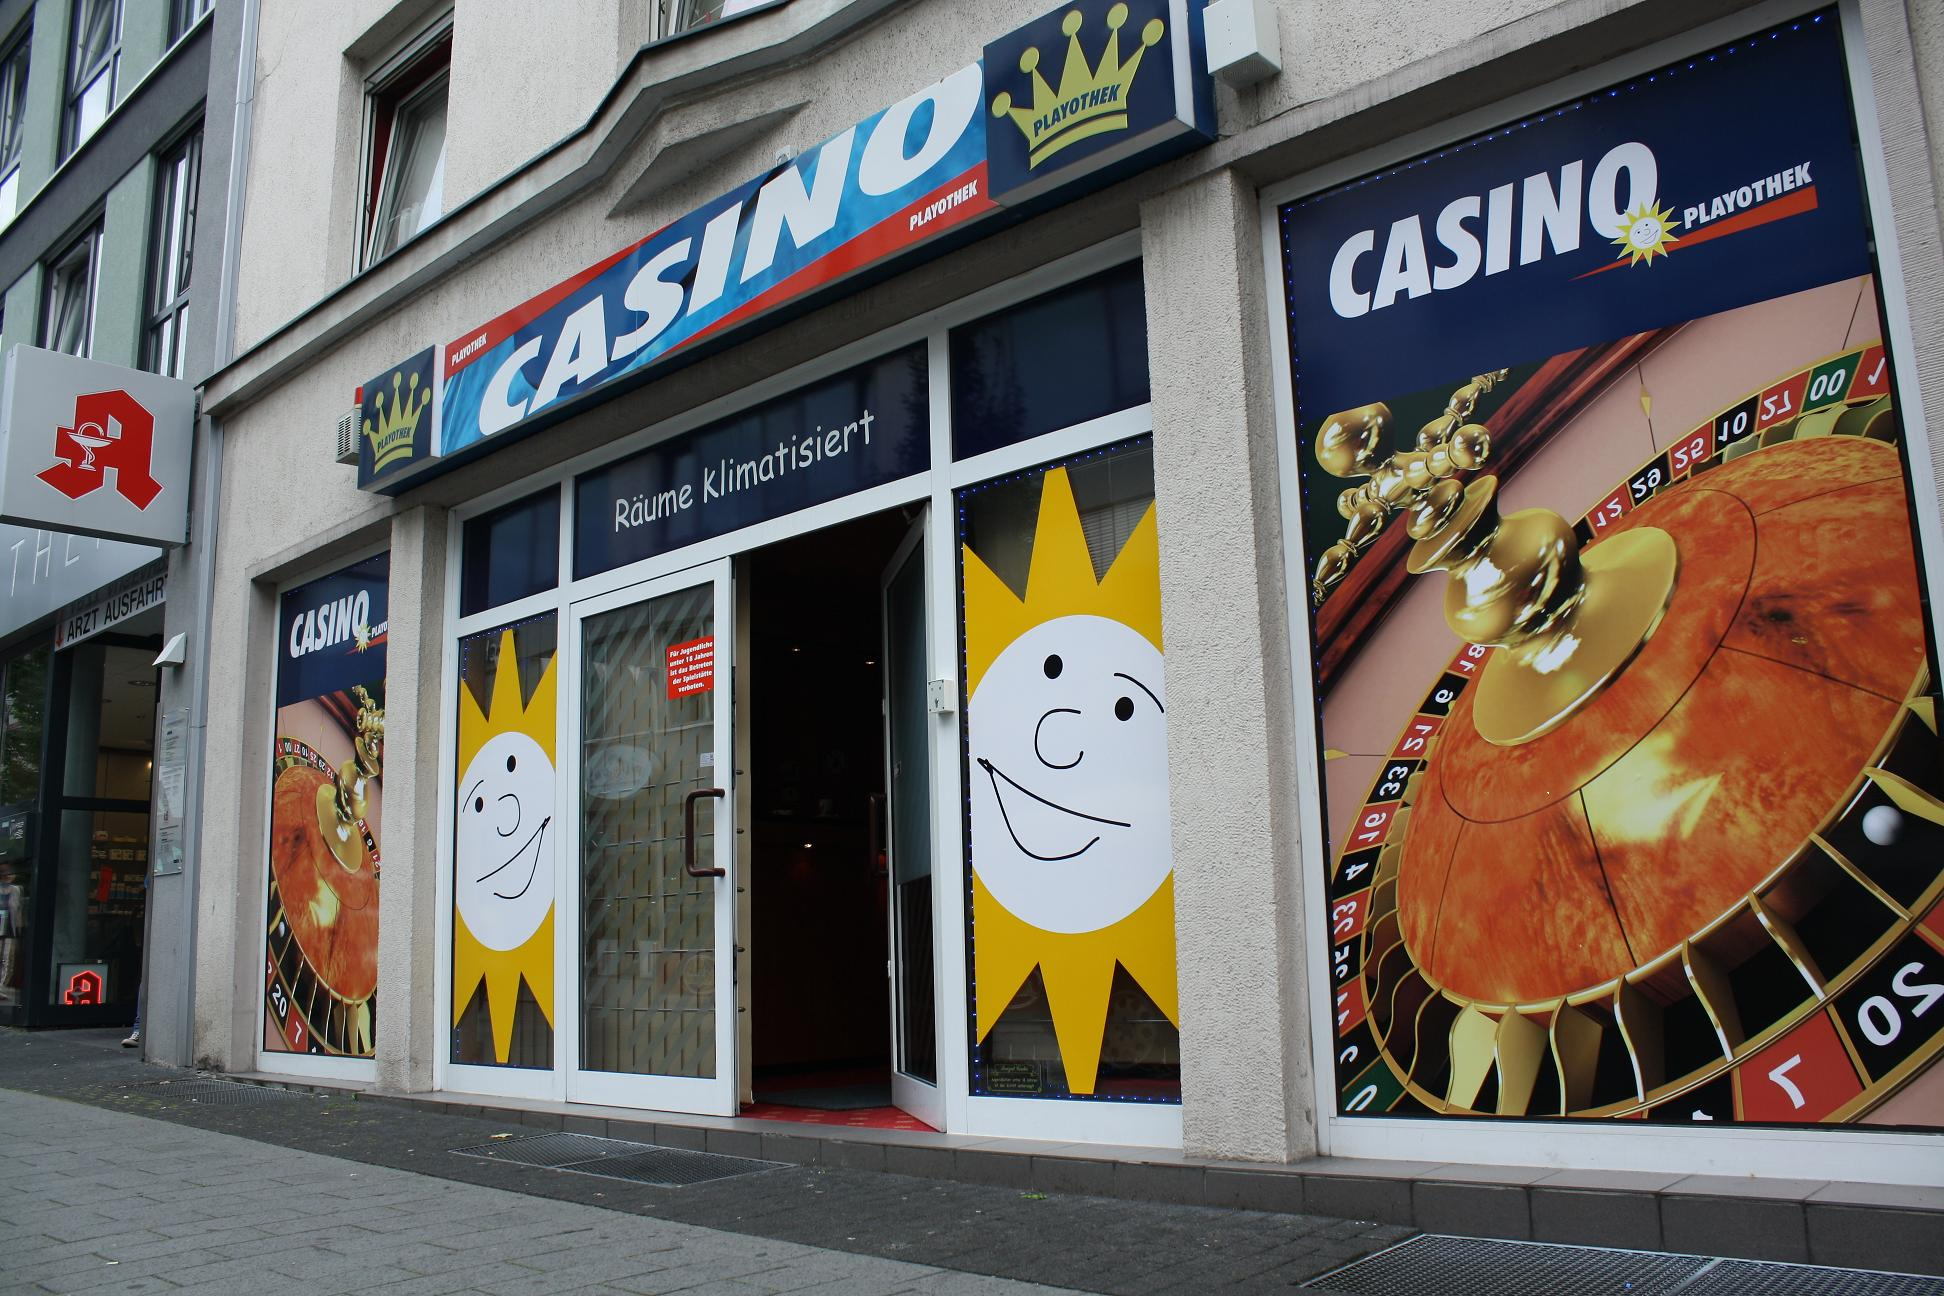 star casino wermelskirchen